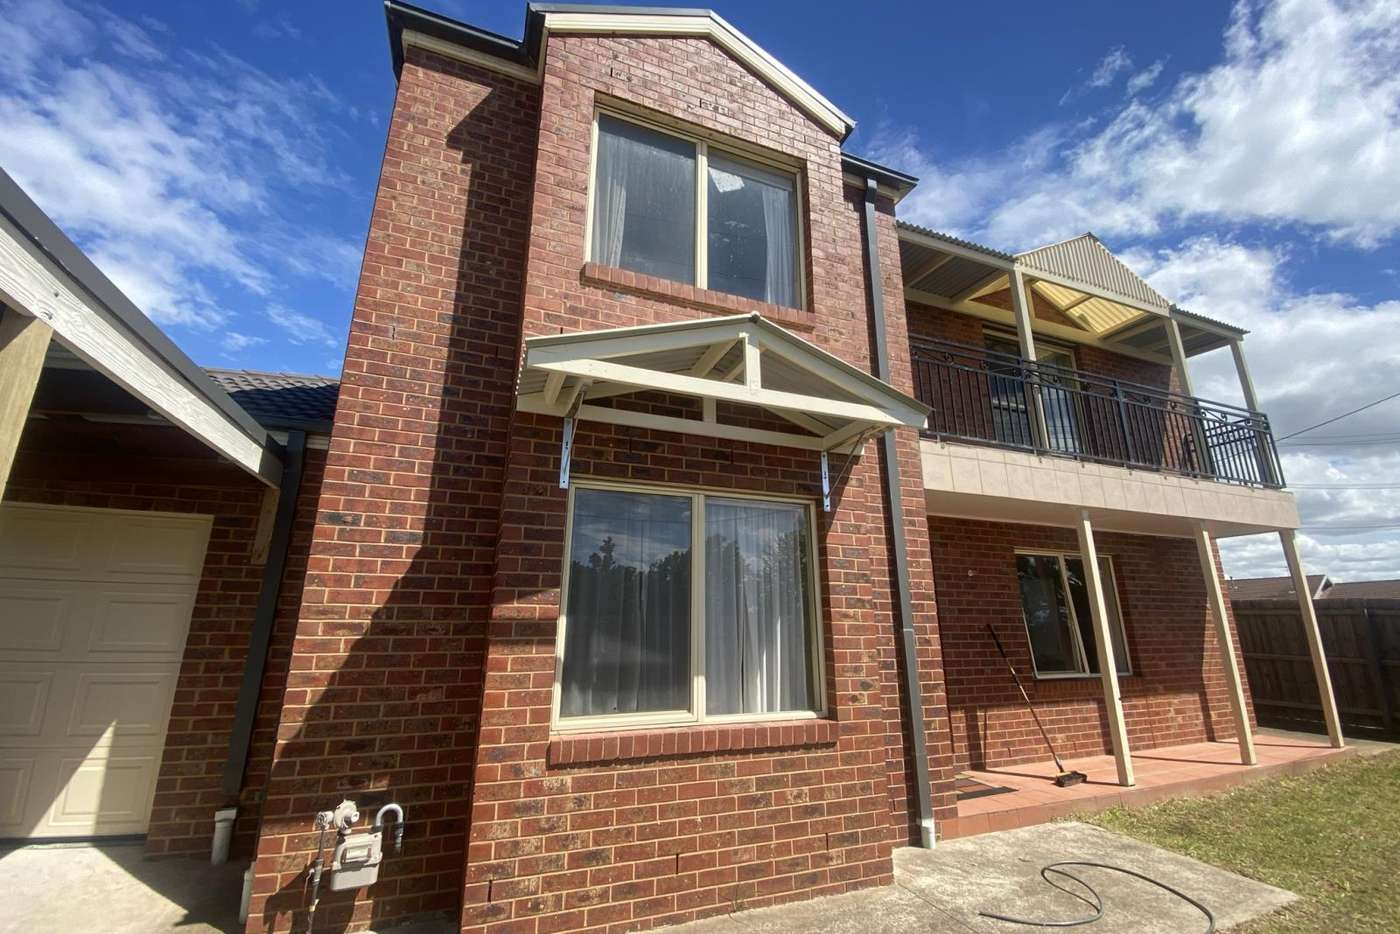 Main view of Homely house listing, 153A Bellbridge Drive, Hoppers Crossing VIC 3029